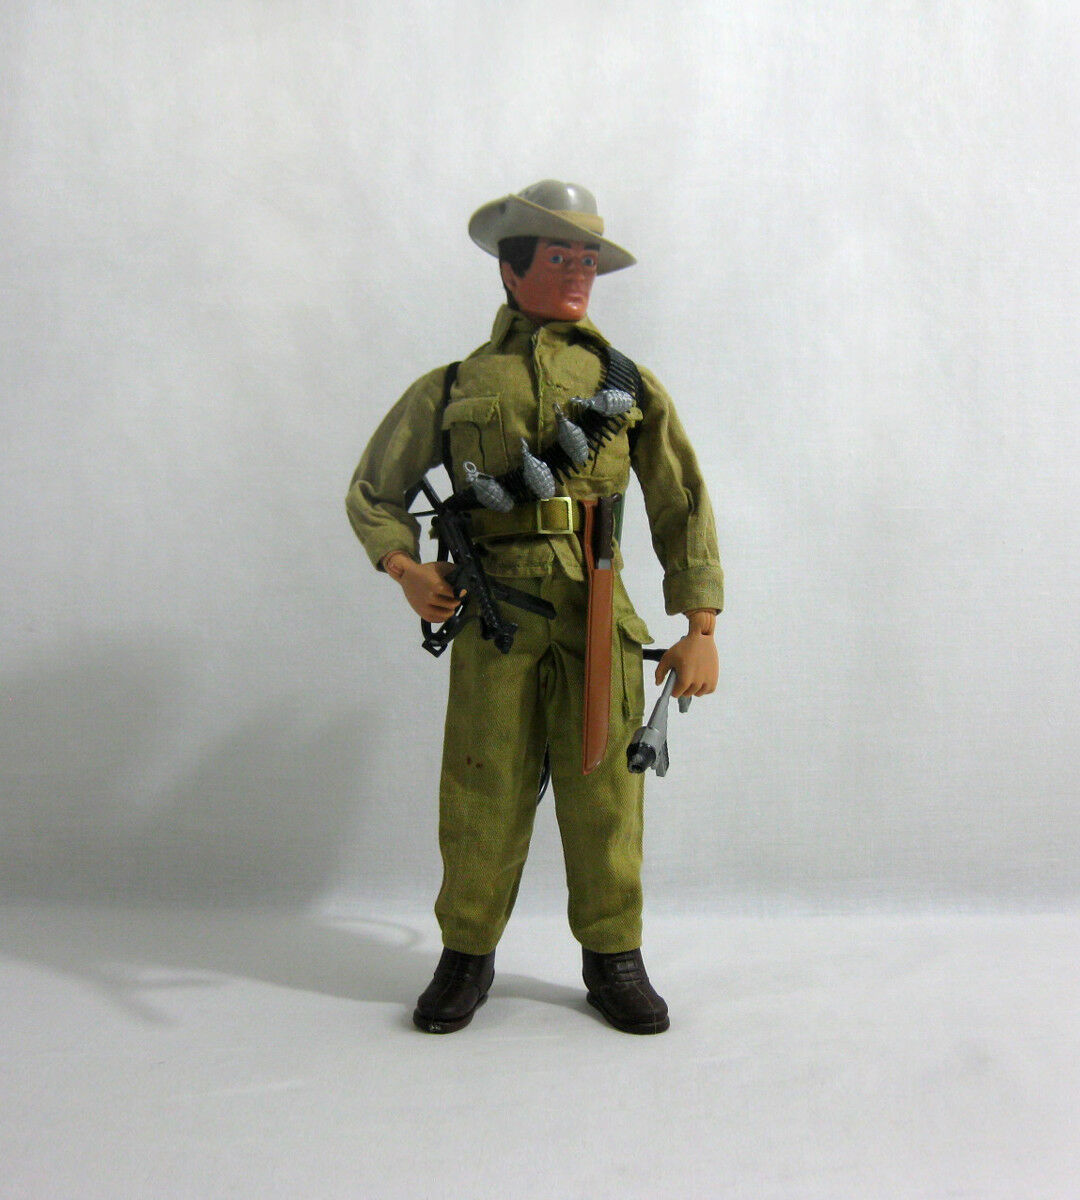 1978 Vintage Action Man ✧ Australian Jungle Fighter ✧ Palitoy Hasbro G.I JOE